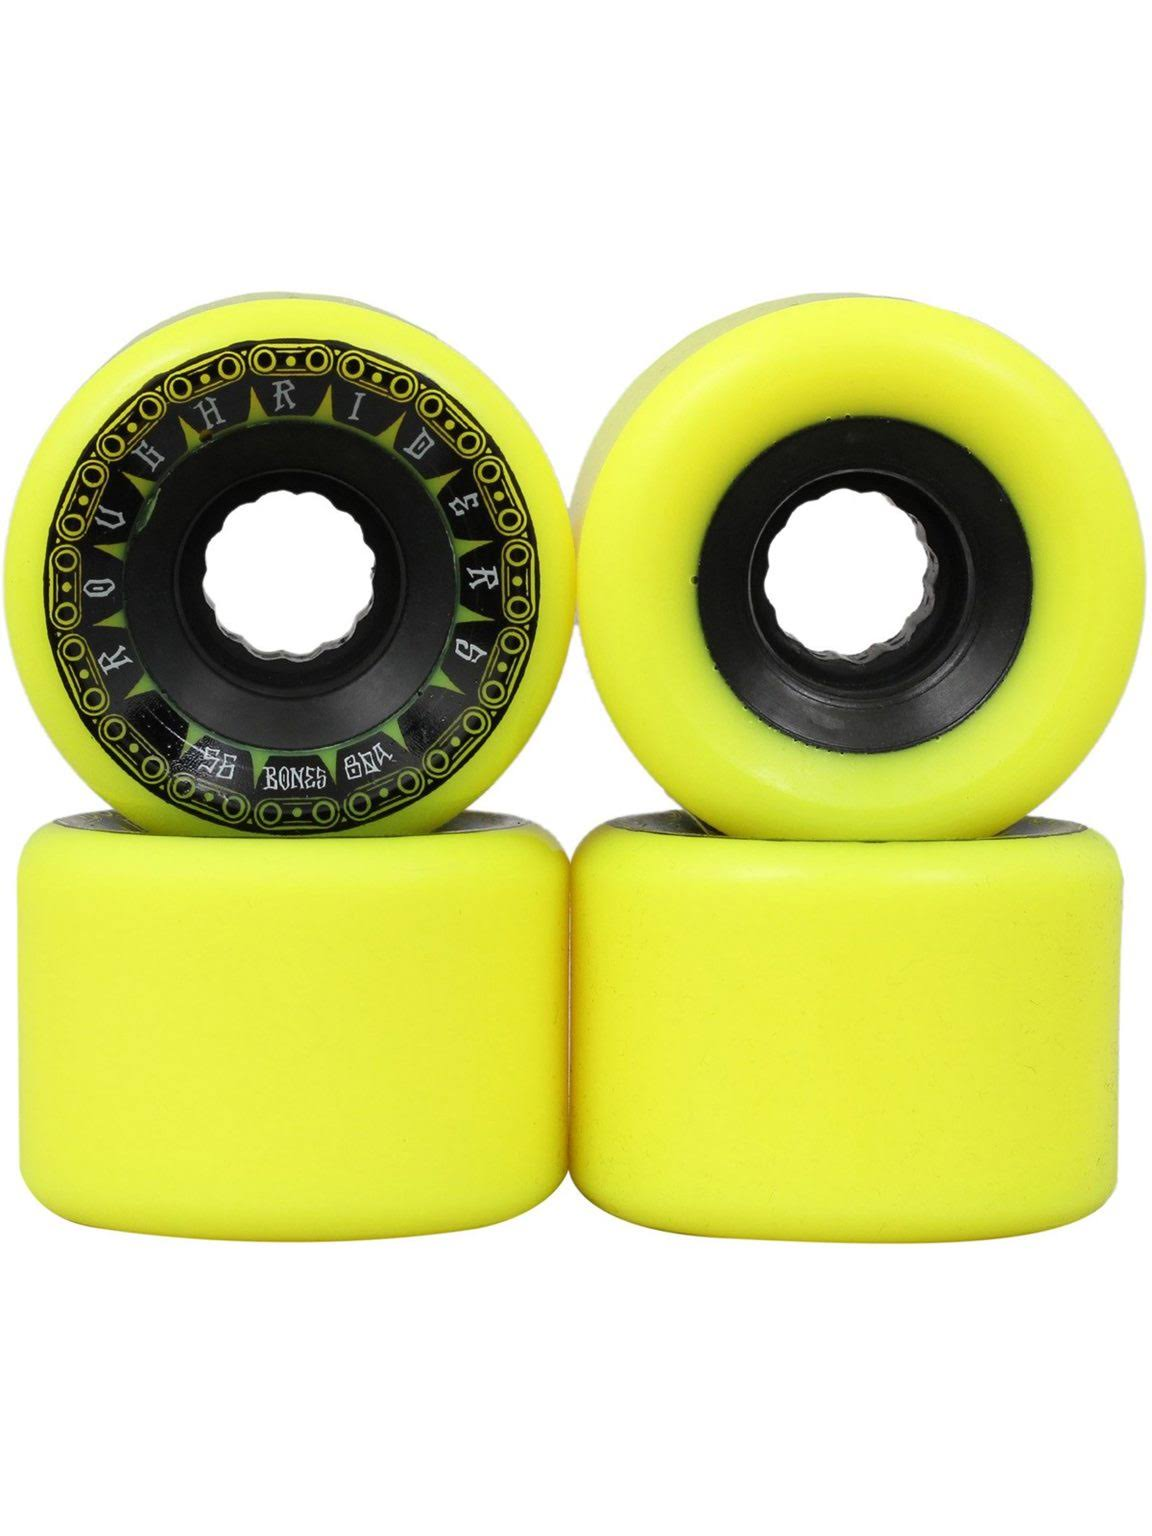 Bones Rough Riders Tank Skateboard Wheels - Yellow, 56mm